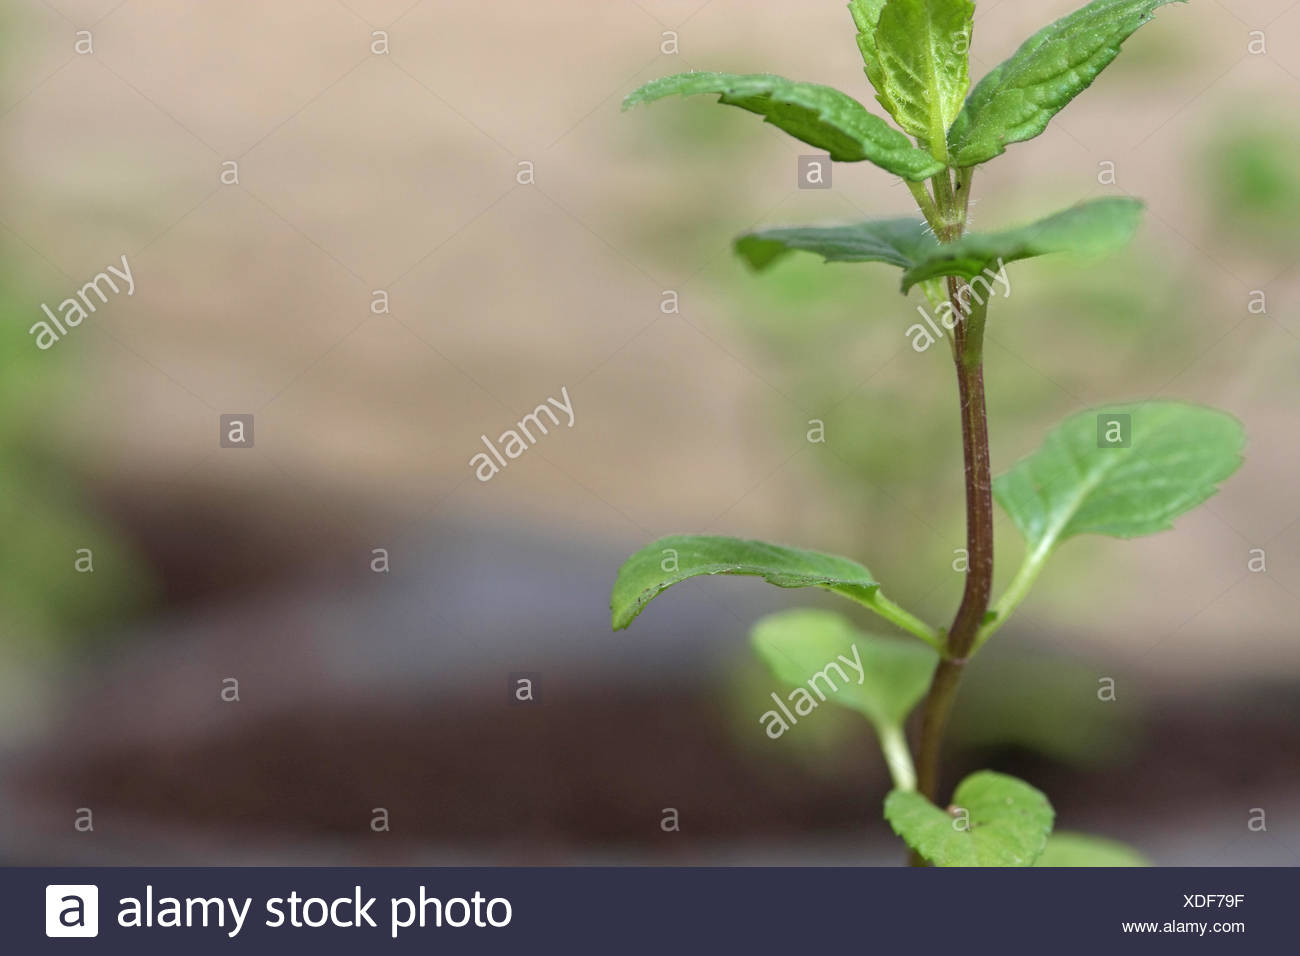 Reared of young mint plant - Stock Image